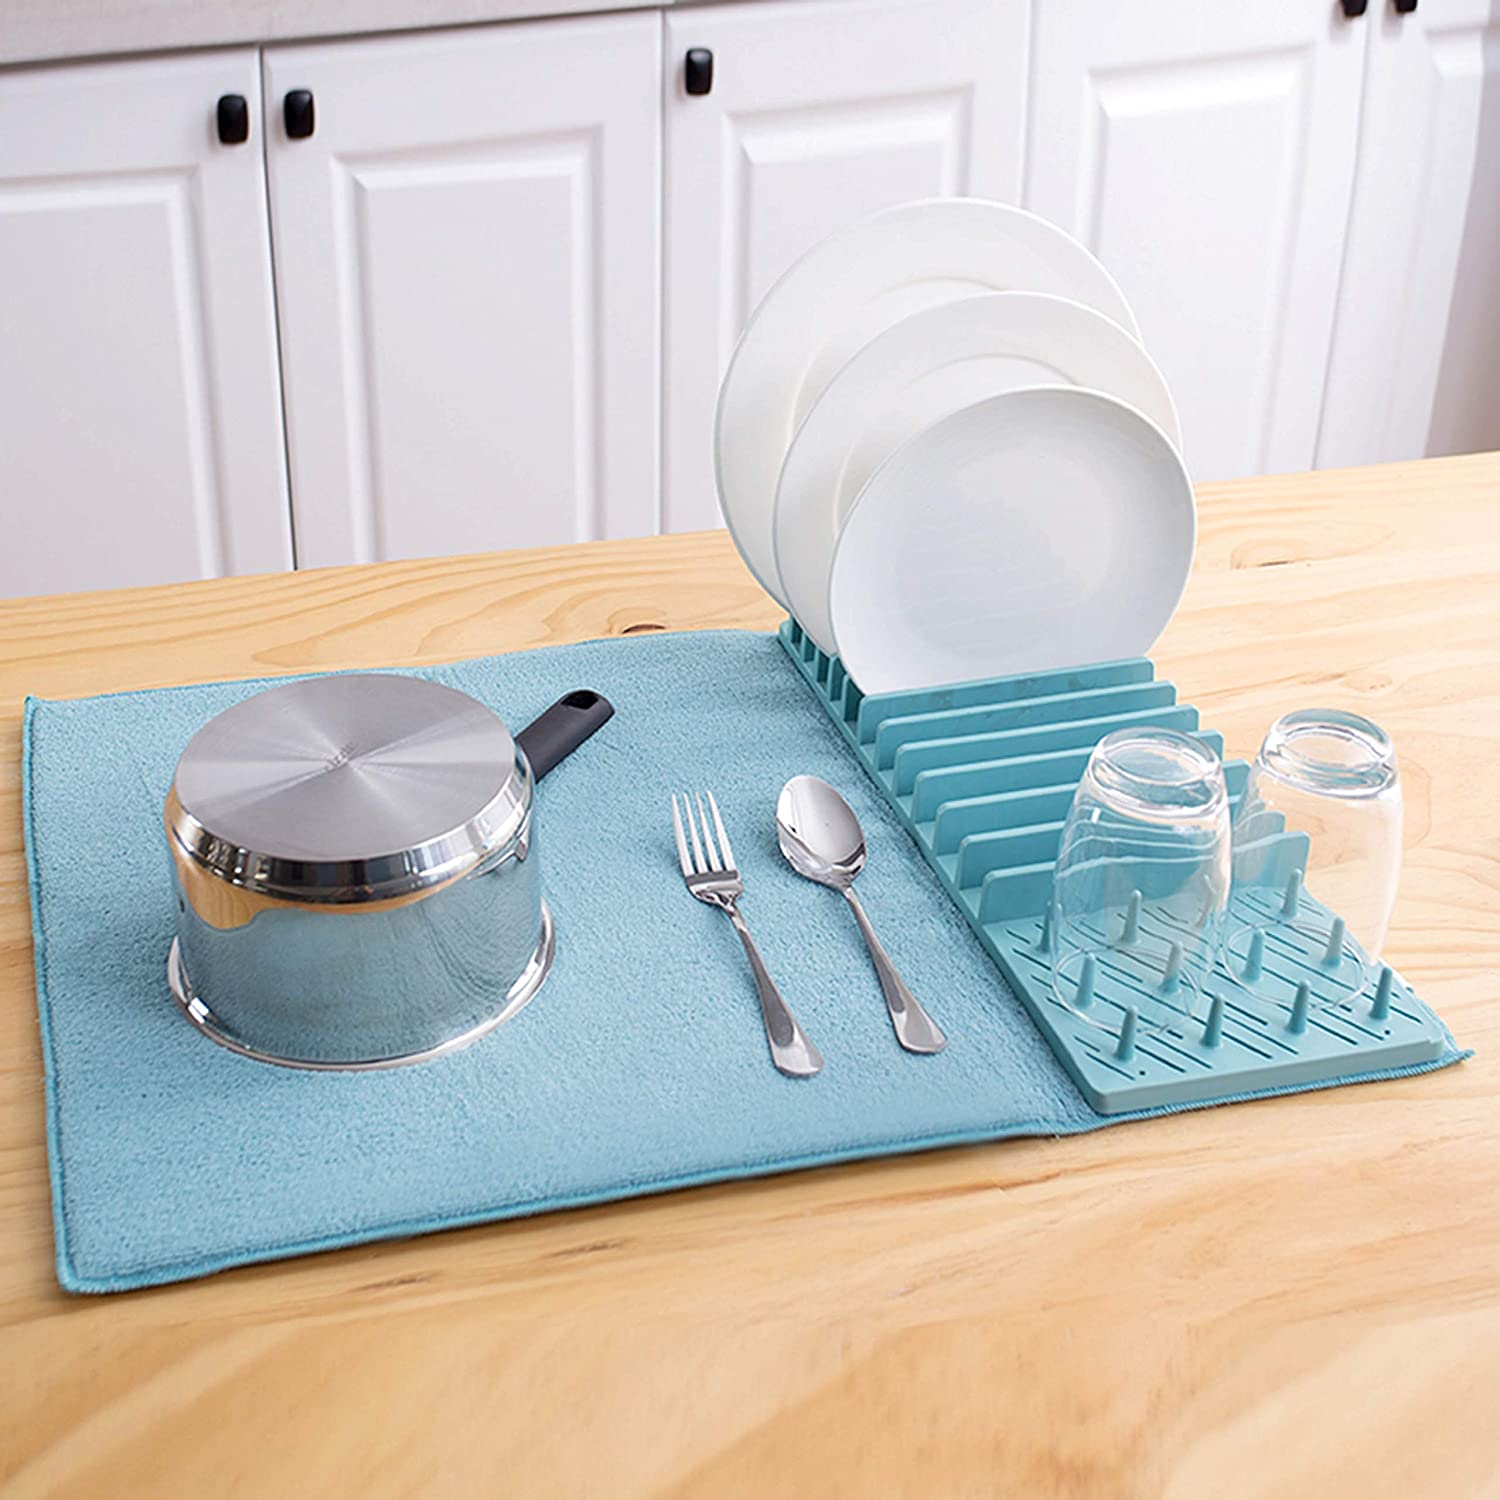 Popular Home 888218 Dish Drying Rack with mat, 15